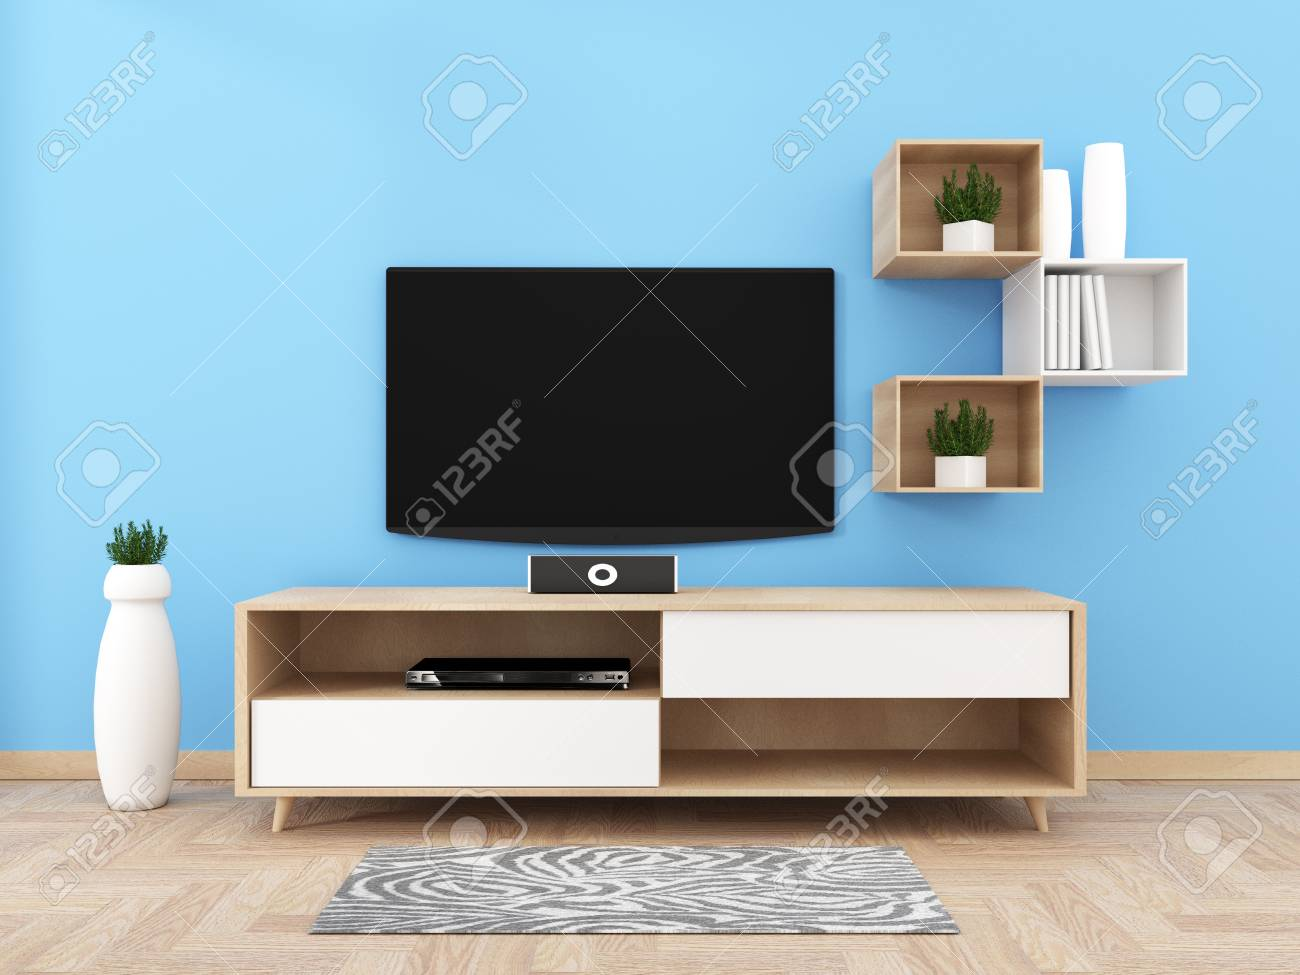 Smart Tv With Blank Black Screen Hanging On Cabinet Design Modern Stock Photo Picture And Royalty Free Image Image 113422722